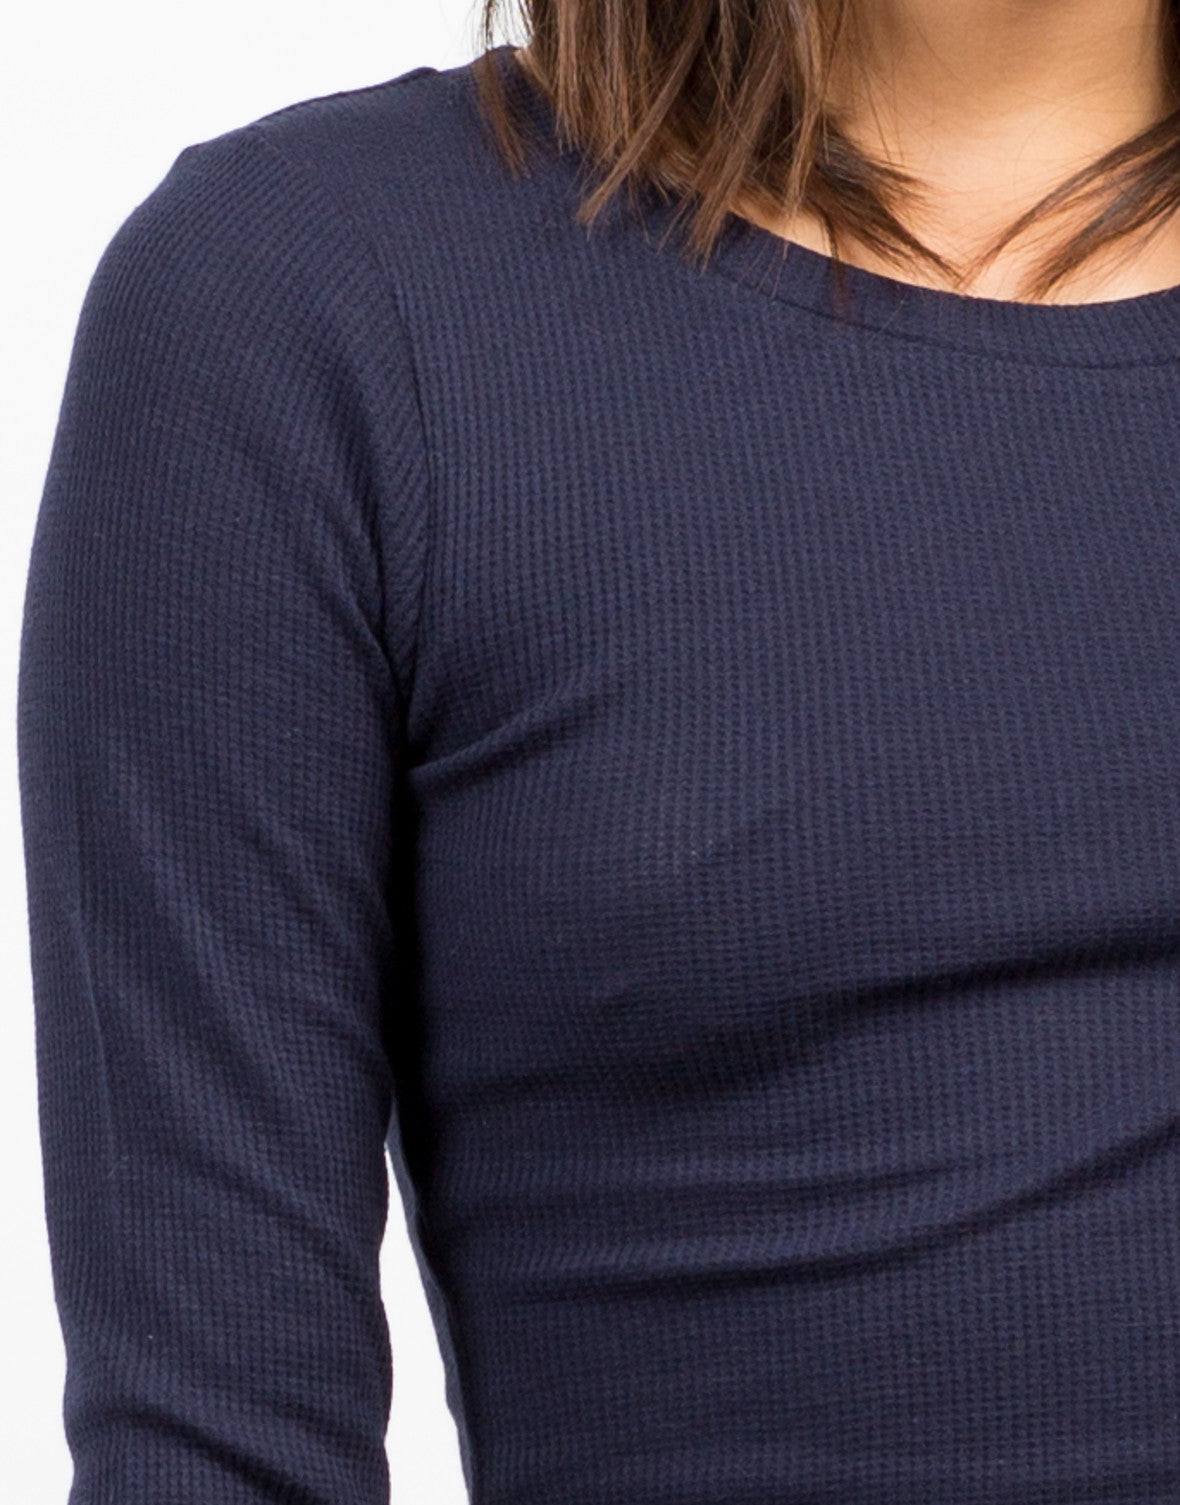 Detail of Long Sleeve Cropped Thermal